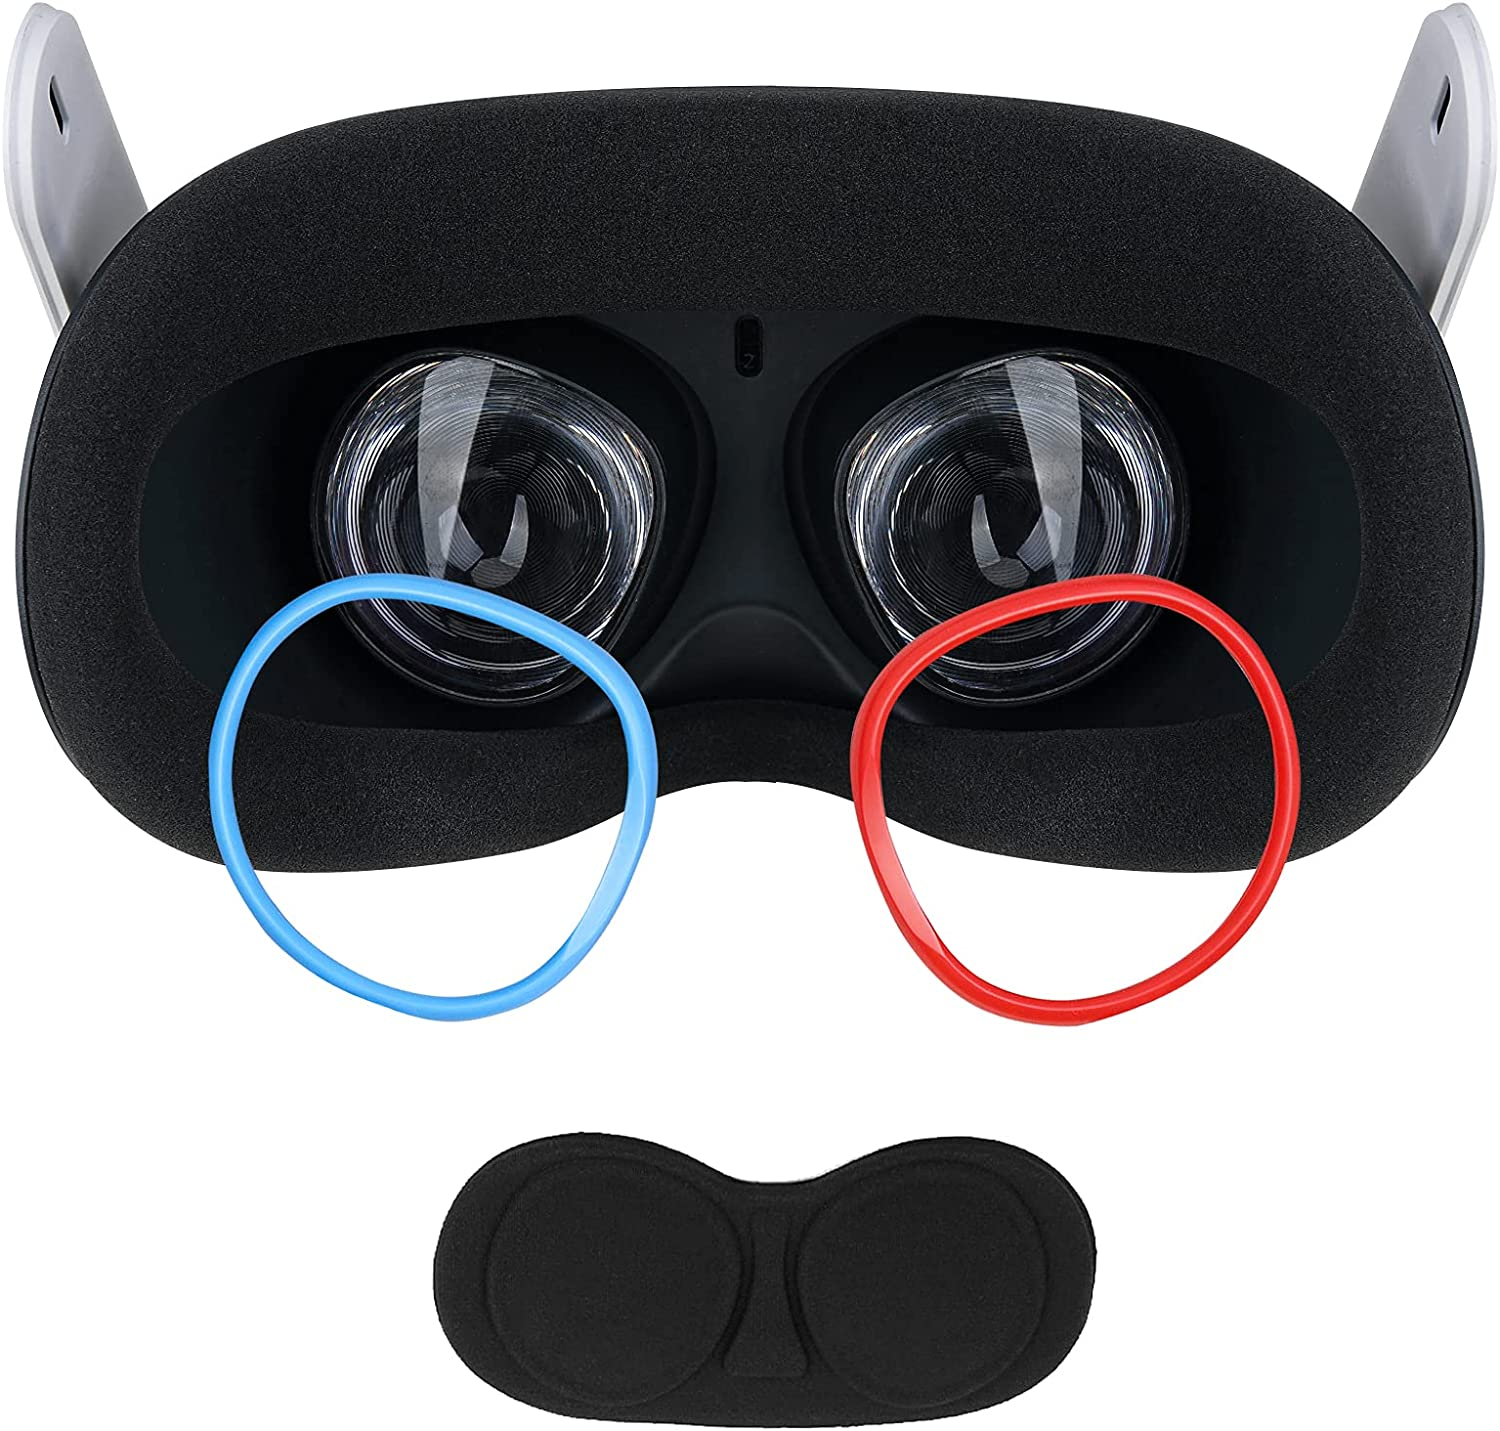 Anti-Scratch Lens Protector Rings, Silicon Protector Accessories for Oculus Quest 2/Quest/Rift S/Go Protect Quest Lens from Myopia Glasses Scratching